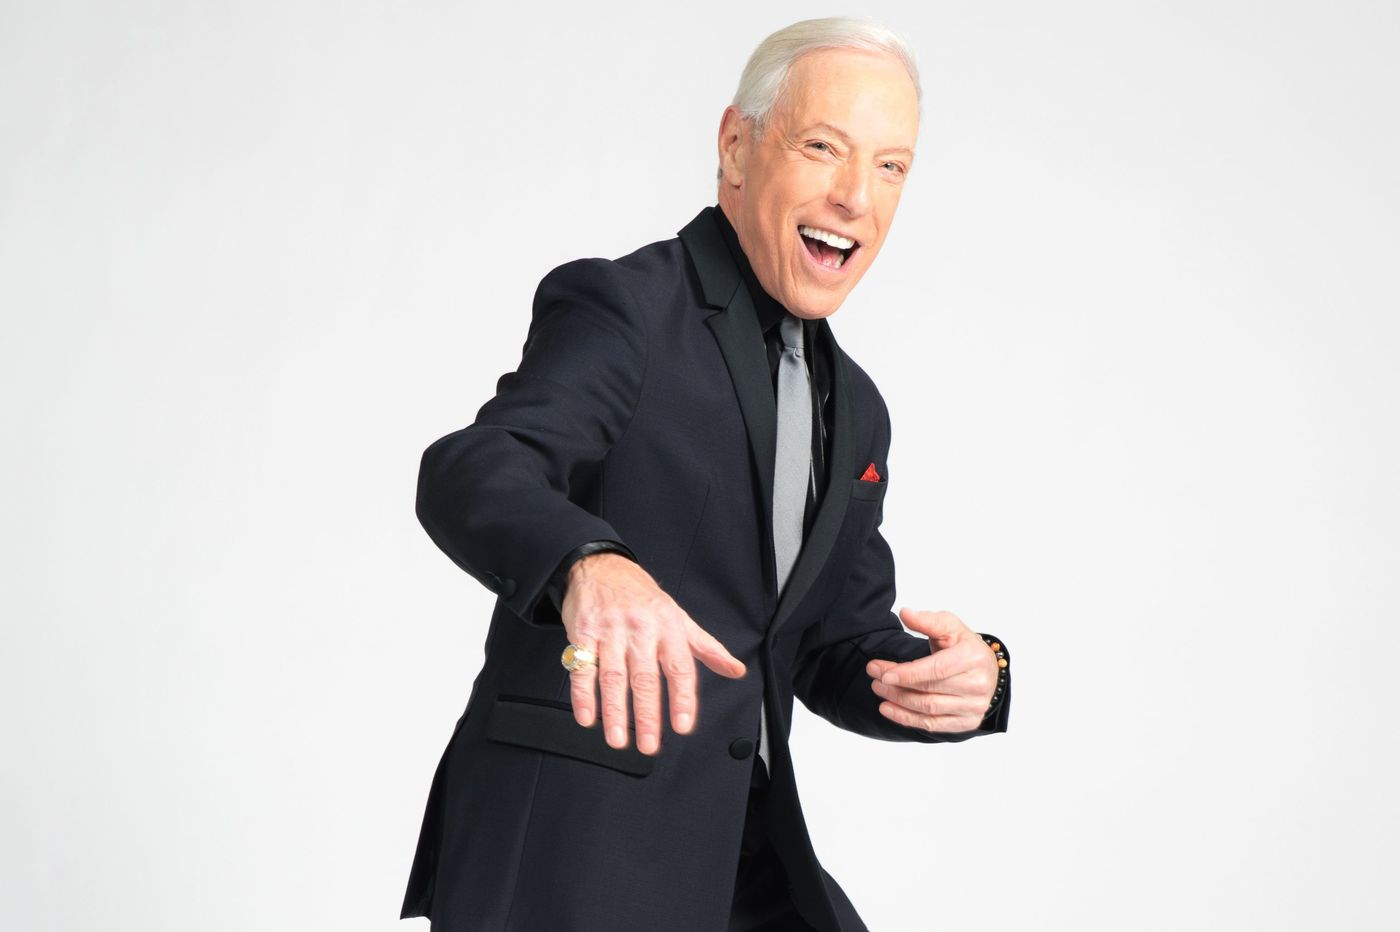 Jerry Blavat celebrates a big anniversary at the Kimmel Center